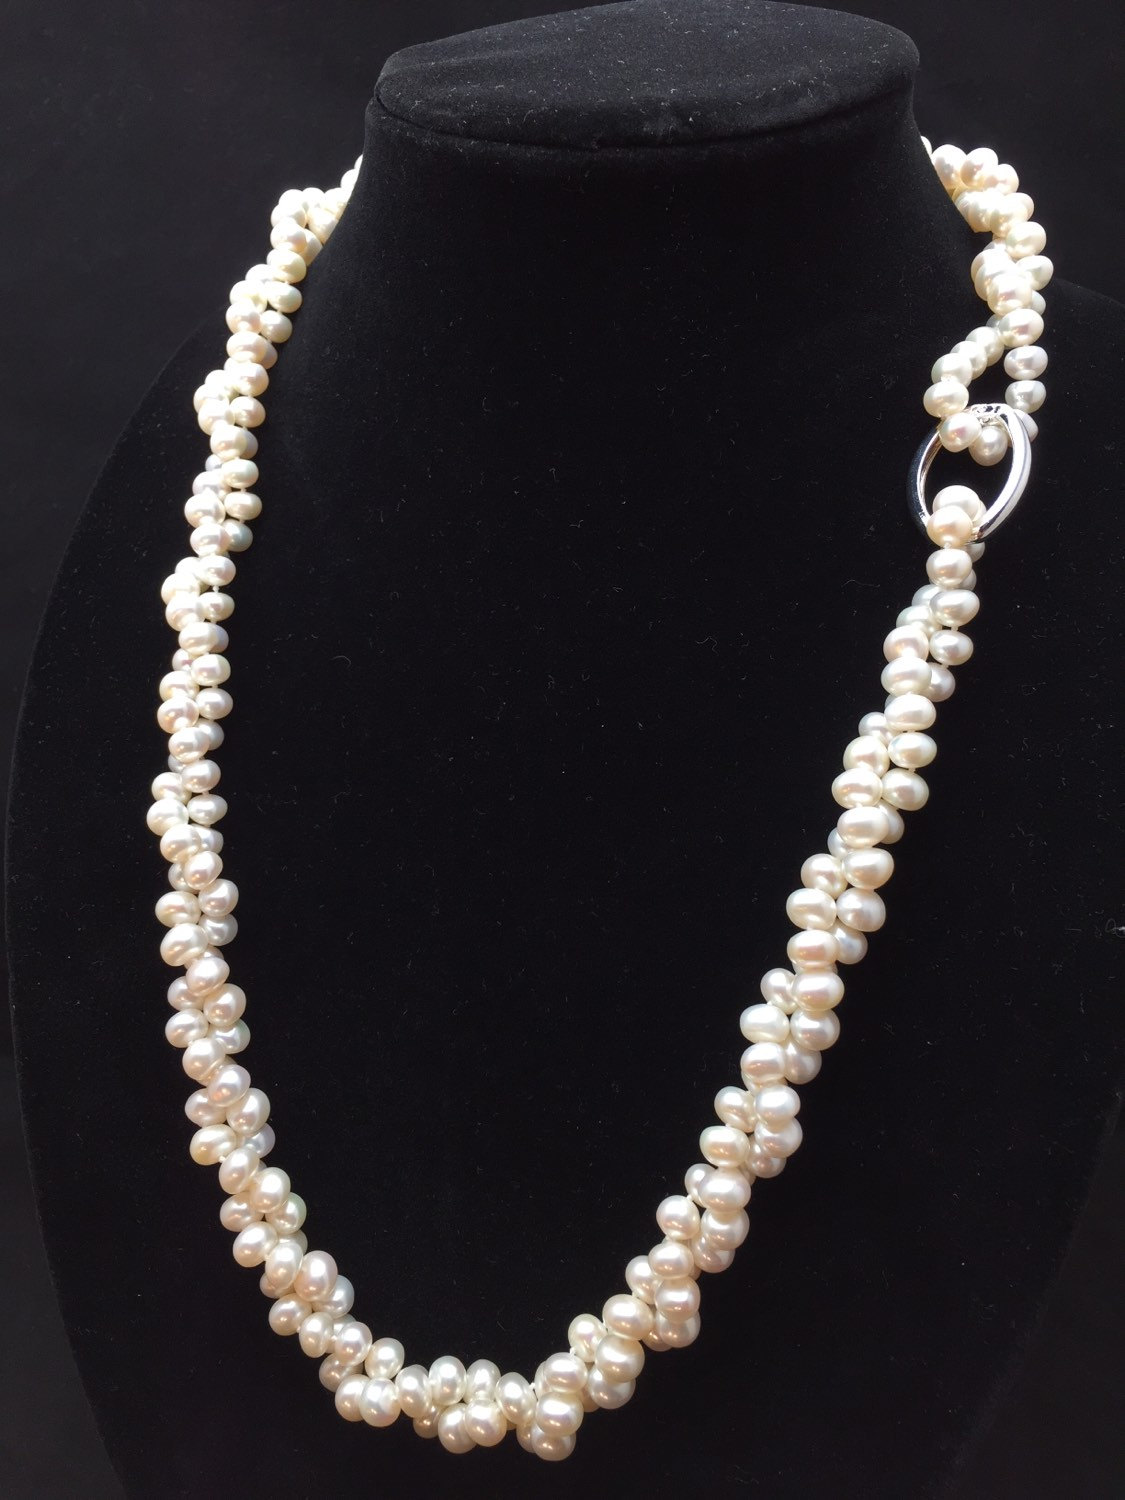 Long Pearl Necklace, Genuine Pearl Necklace, 60 Inches, Aa Pearl  Necklace, Opera